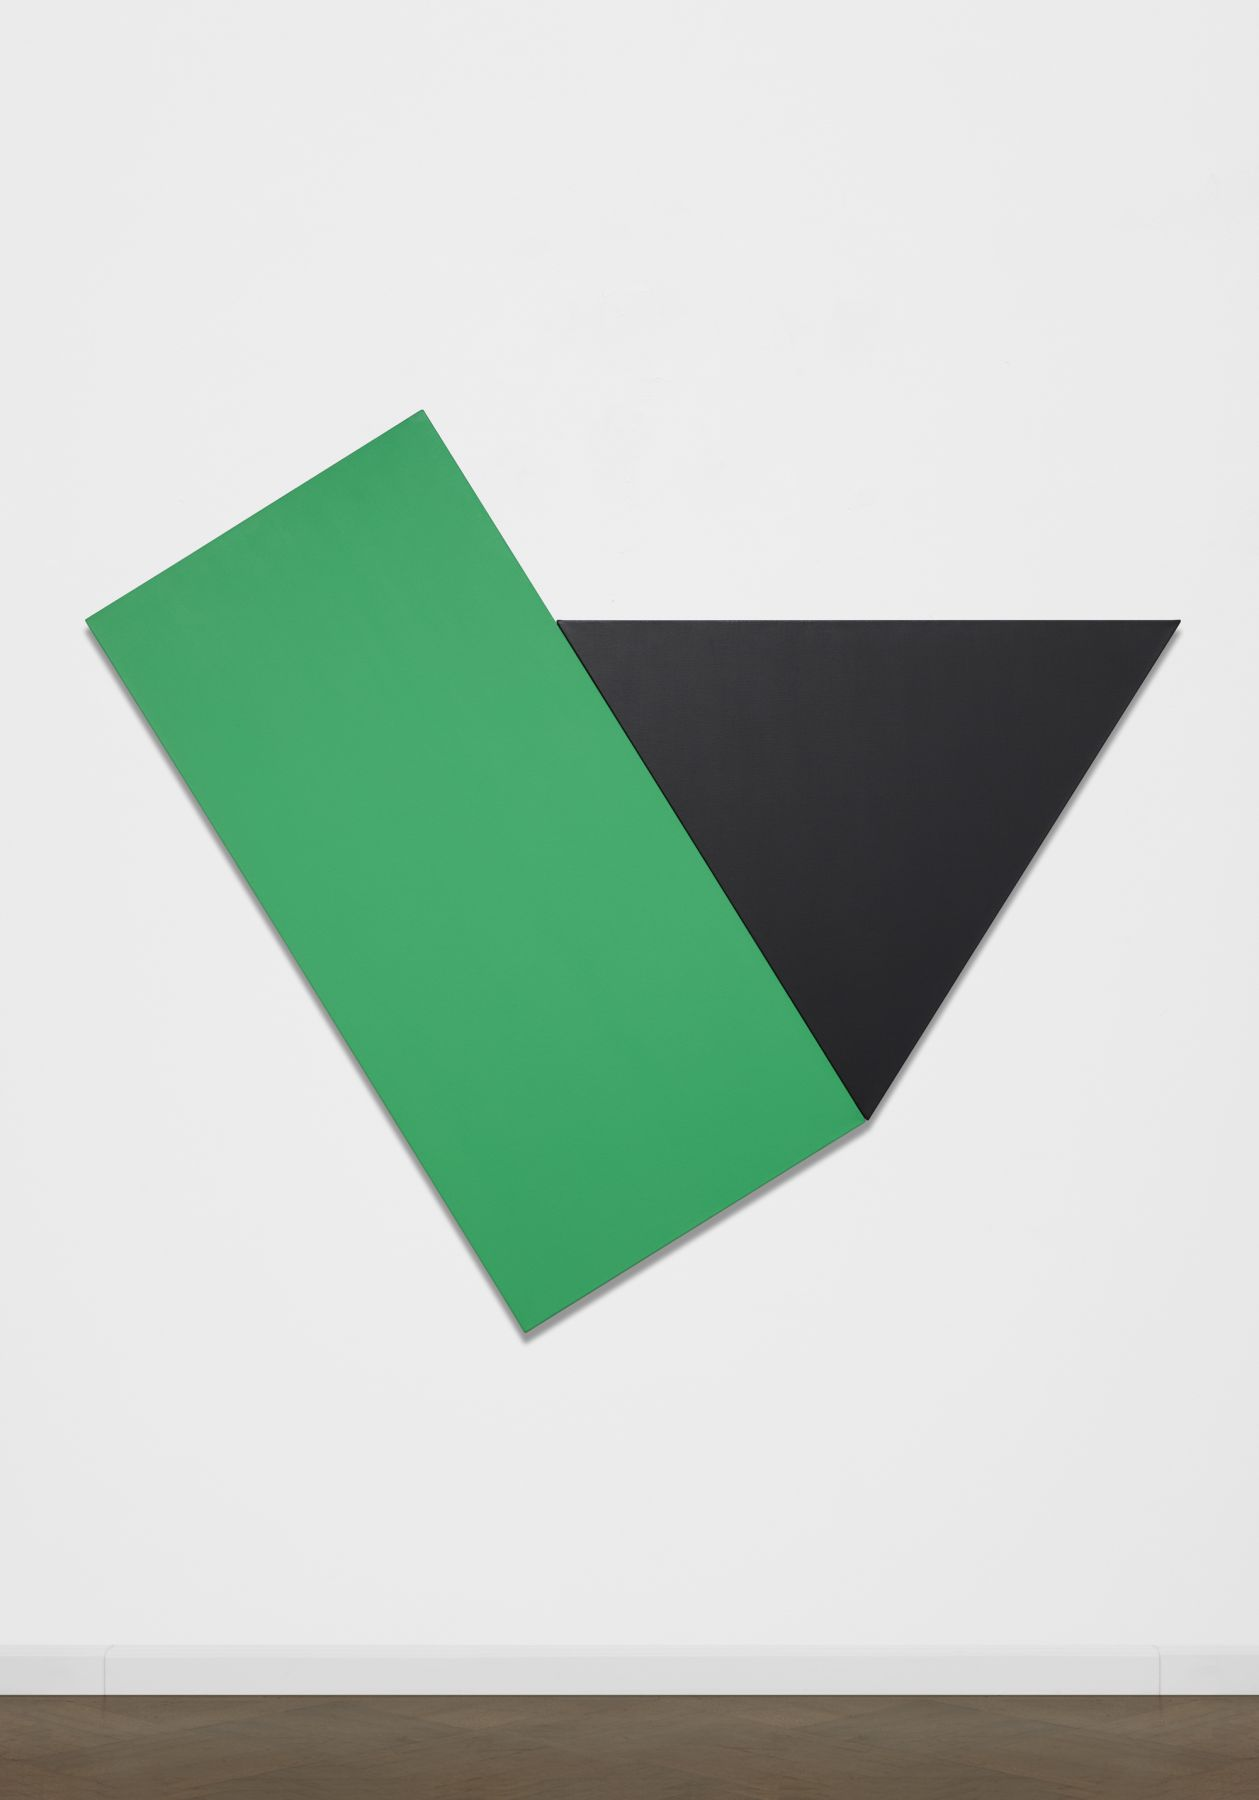 Ellsworth Kelly, Green with Black Triangle, 1974, oil on canvas, 78 x 93 1/4 inches